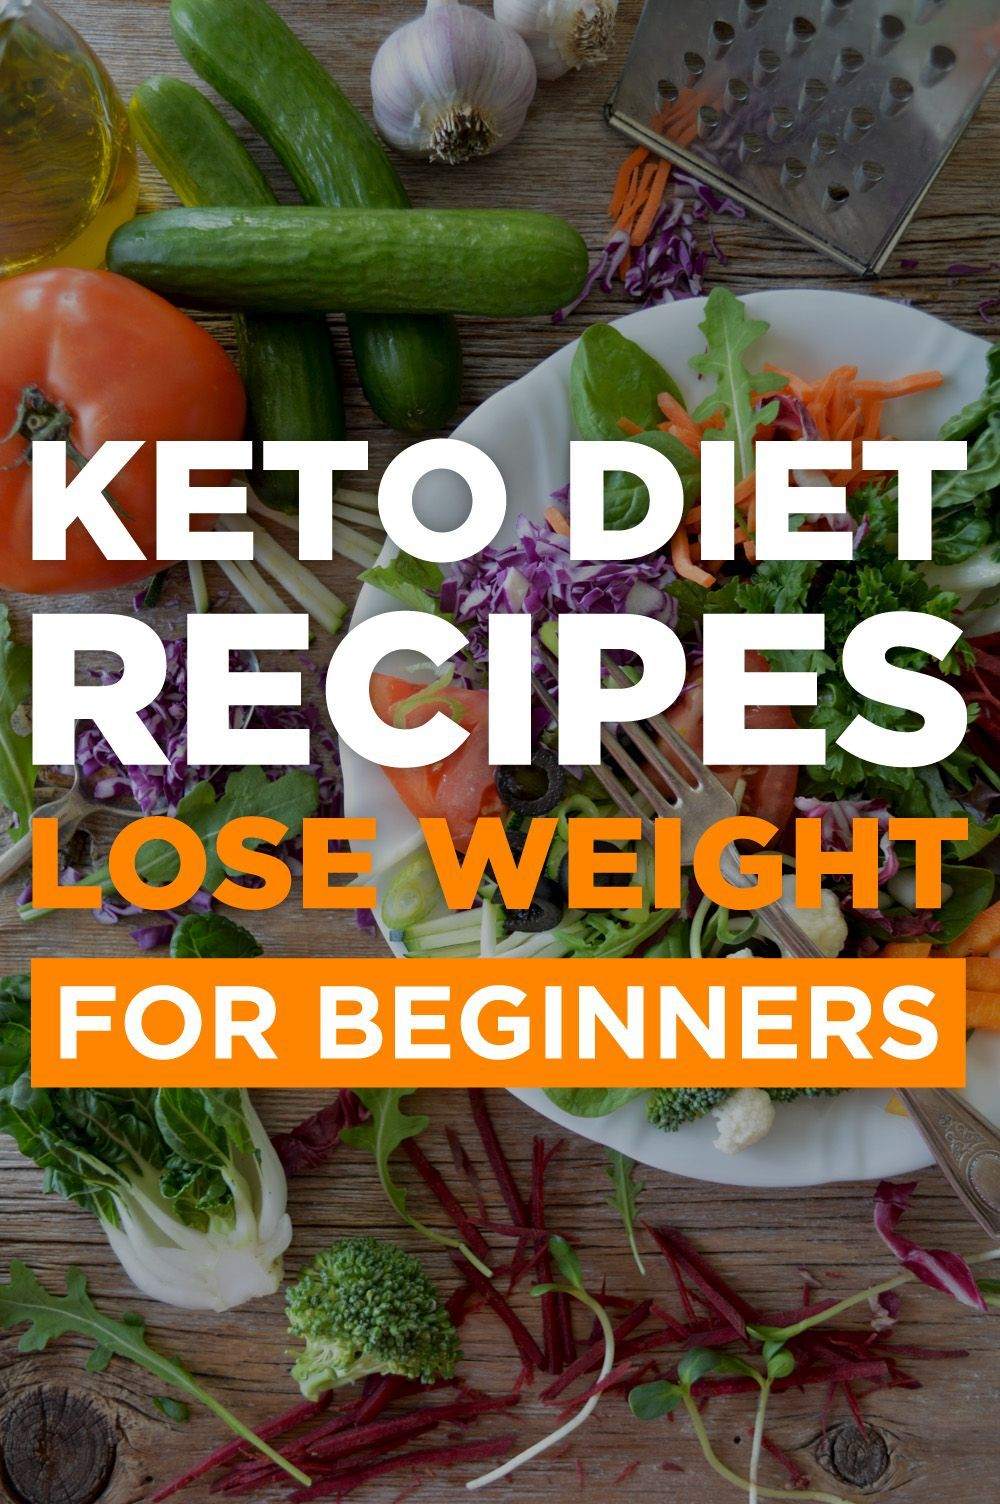 Keto Diet Recipes, low carb kids, 	new low carb recipes, 	pre workout food,  #myfitnesspalrecipes low carb kids, 	new low carb recipes, 	pre workout food,  low carb life, 	atkins diet phases, 	keto diet supplements,  ketogenic diet dinner recipes, 	belly fat diet plan, 	low fat diet for weight loss,  keto pescatarian recipes, 	nutritarian diet, 	low carb sides,  modified paleo diet, 	myfitnesspal recipes, 	recipes foods,  easy diet food, 	low carb diet easy, 	1 week weight loss,  the best diet t #myfitnesspalrecipes